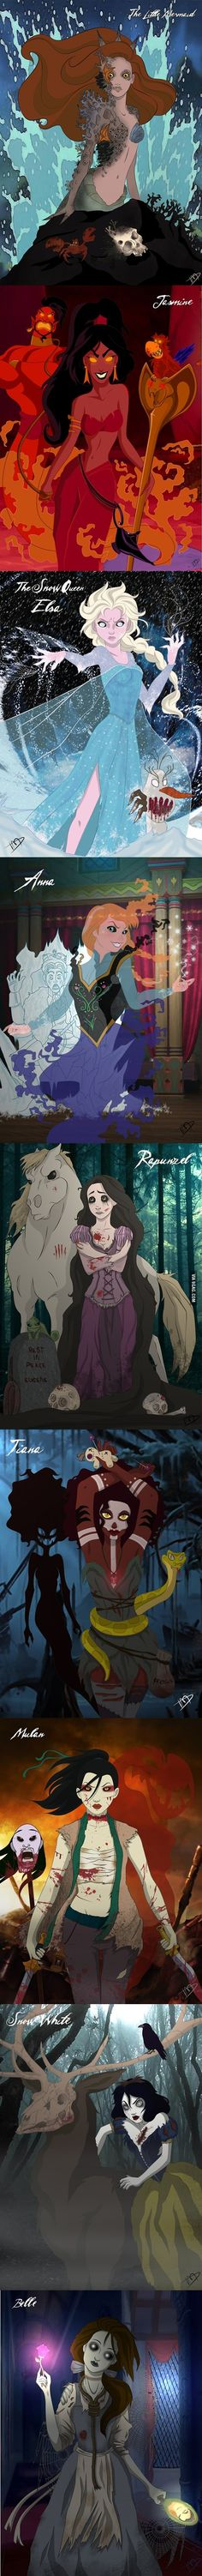 What if Ariel lost her deal with the witch? If Jasmine got stuck with Jafar? If Elsa gone bad? If Anna got killed? If Rapunzel couldn't save Eugene? If Tiana went with the Dark Arts? If Mulan went with the Huns? If Snow White got killed by the Huntsman? If Belle got hung for loving the Beast?